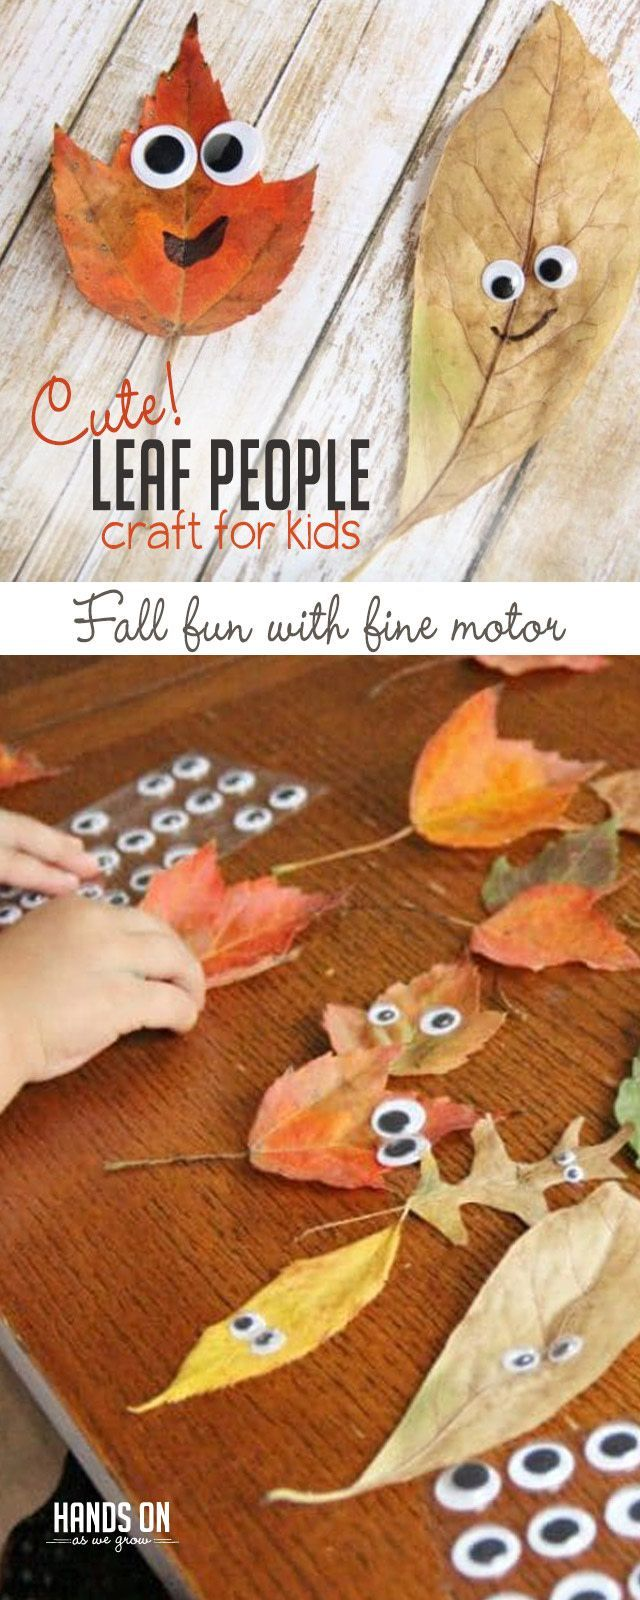 Cute Leaf People Fall Craft for Kids